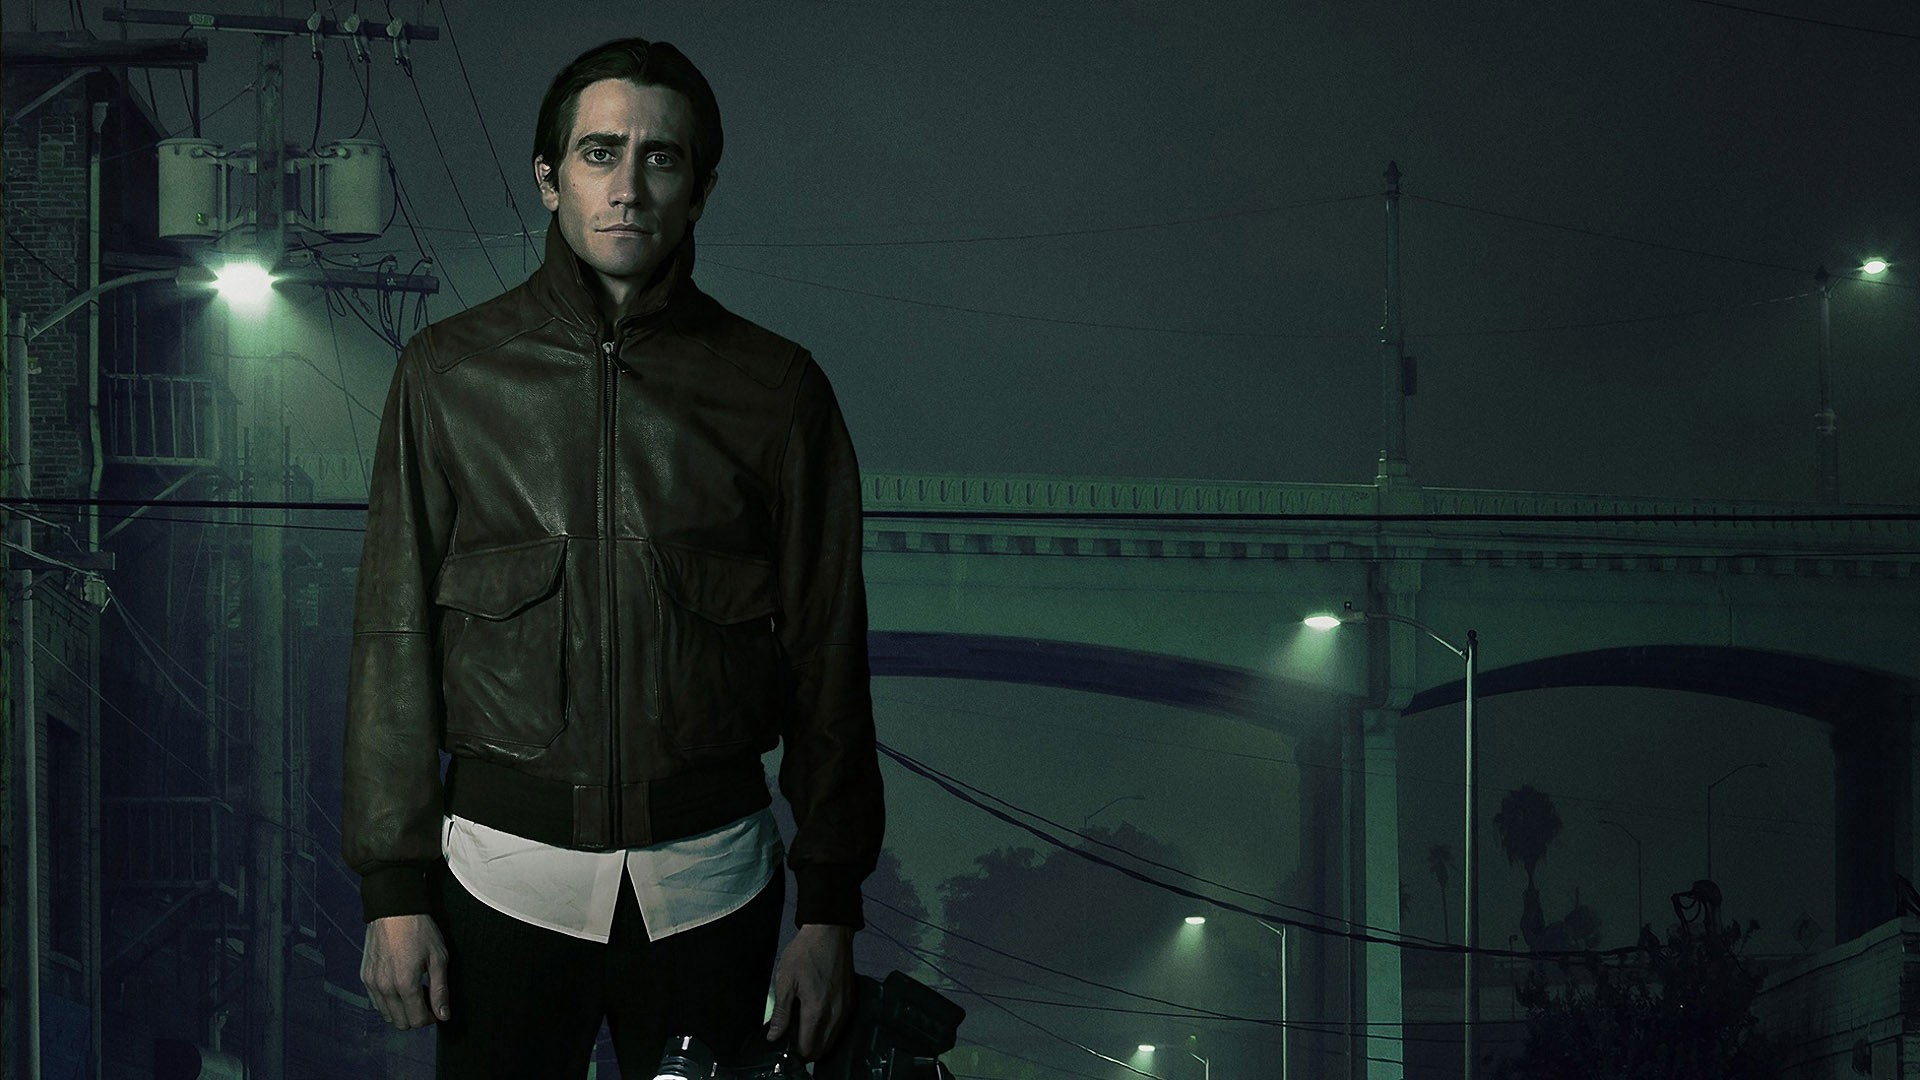 Nightcrawler - 15 Underrated Movies on Netflix